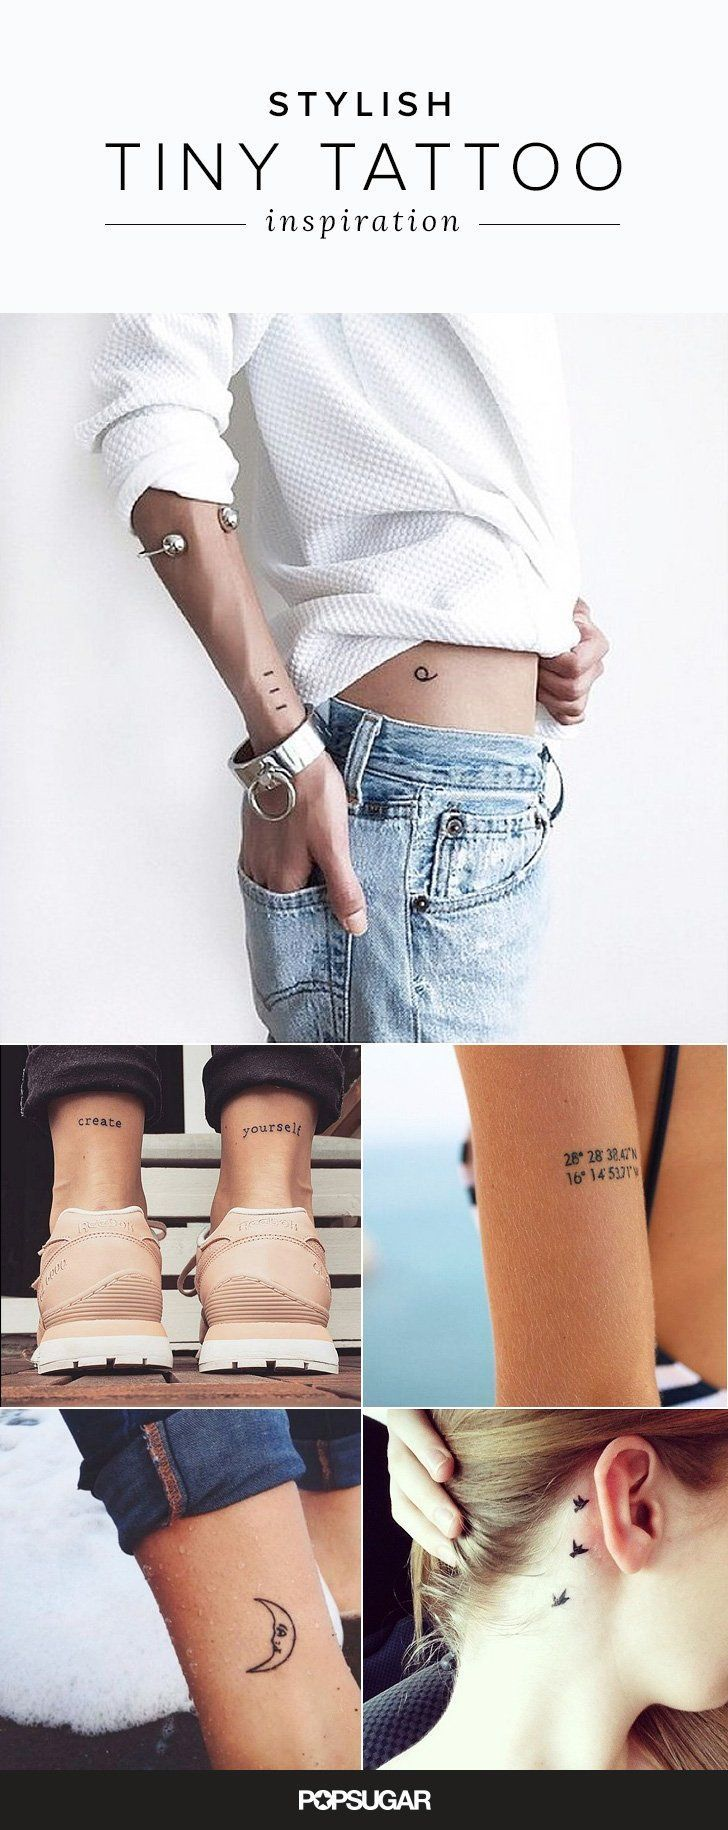 Choosing a great outfit takes time and careful consideration — a tattoo, well, the fact it's permanent means it takes even more thinking. Even a woman